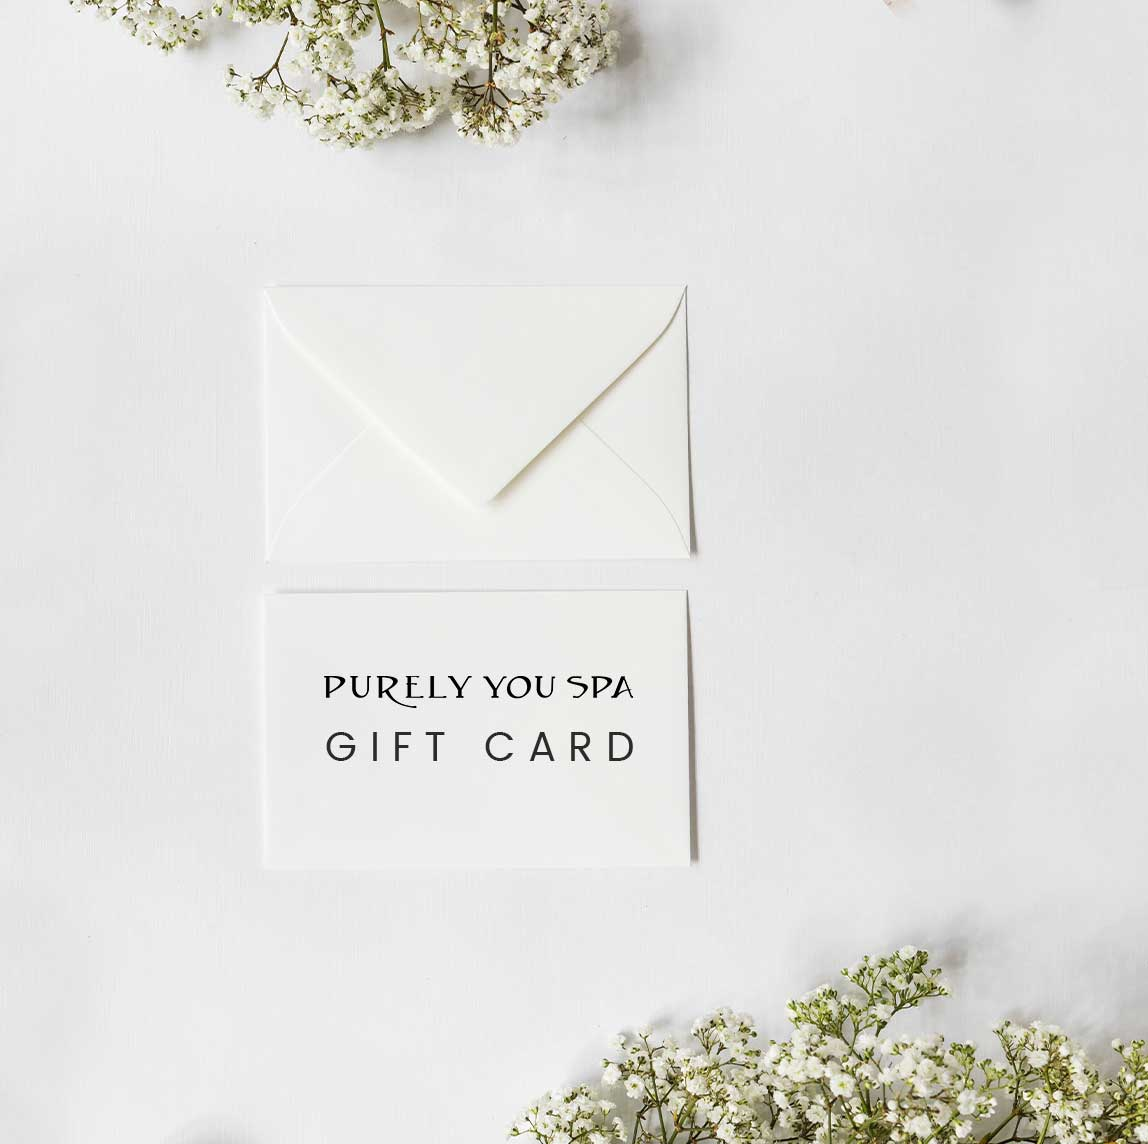 Purely You Spa gift cards available for purchase   Certified Organic Day Spa Naples, Florida